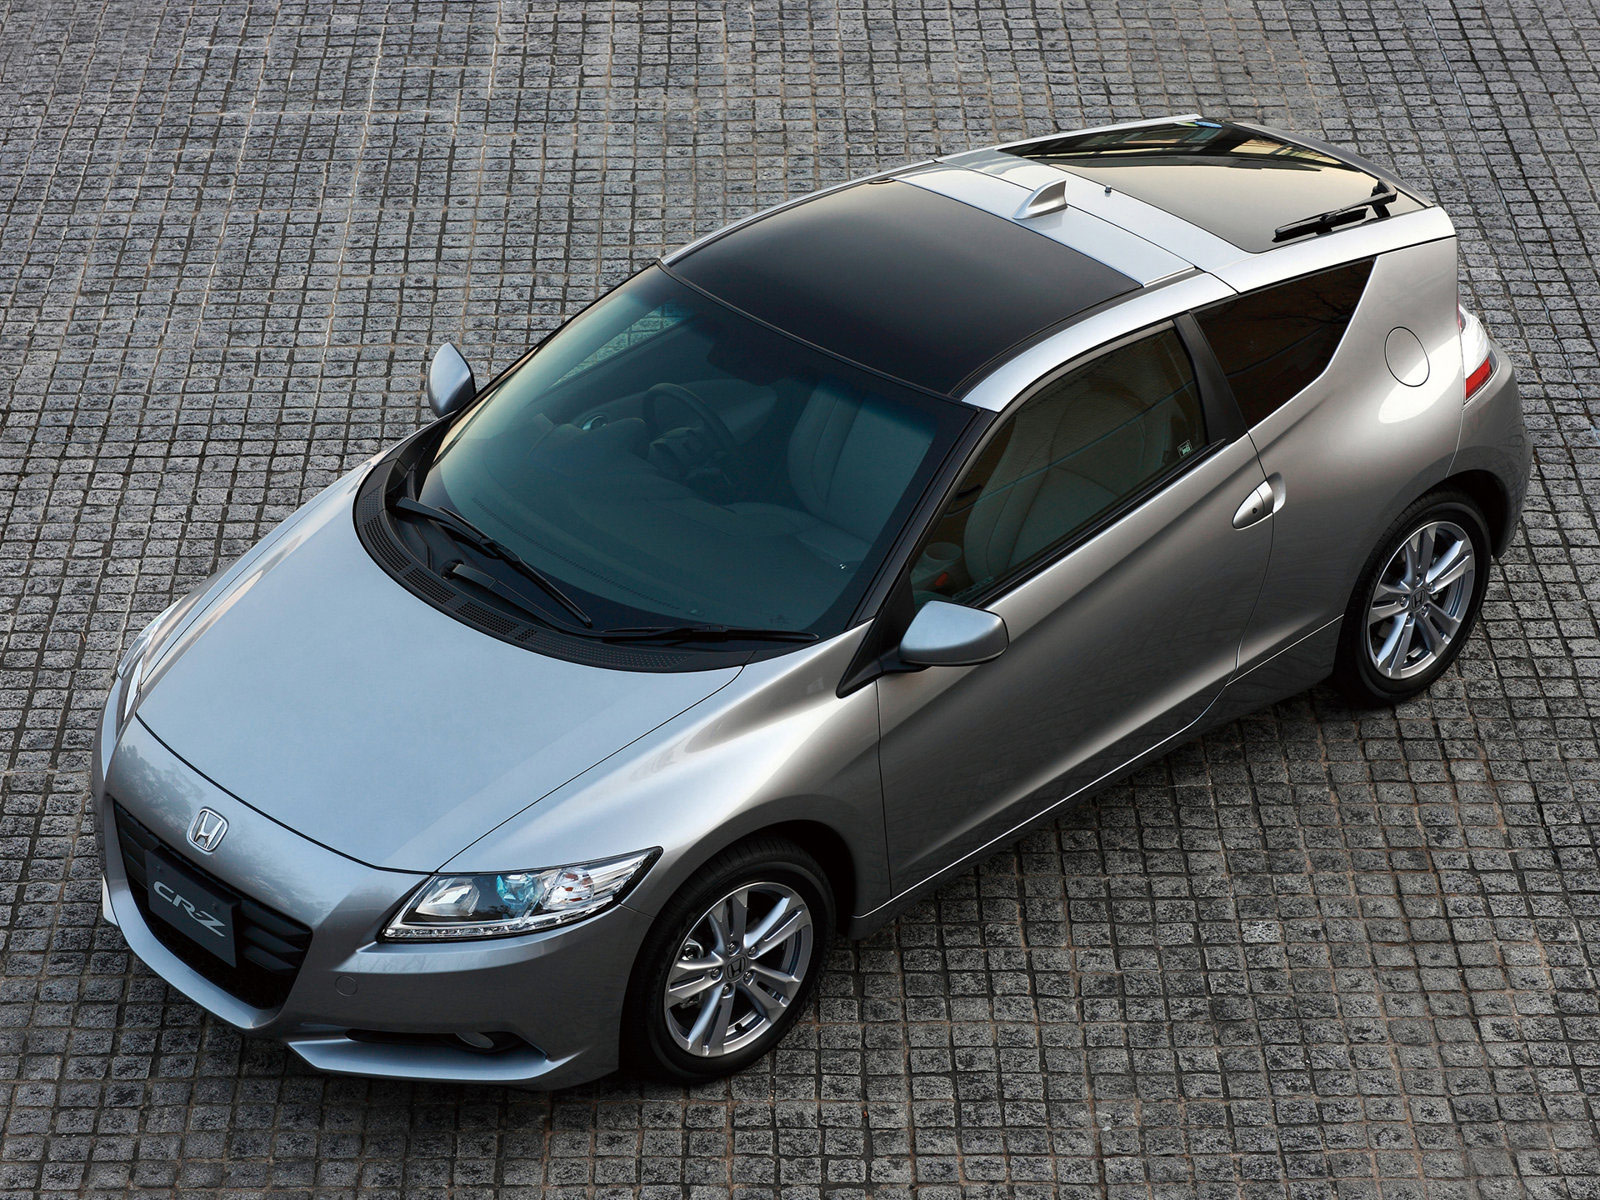 2011 Honda Cr Z Japanese Car Wallpapers